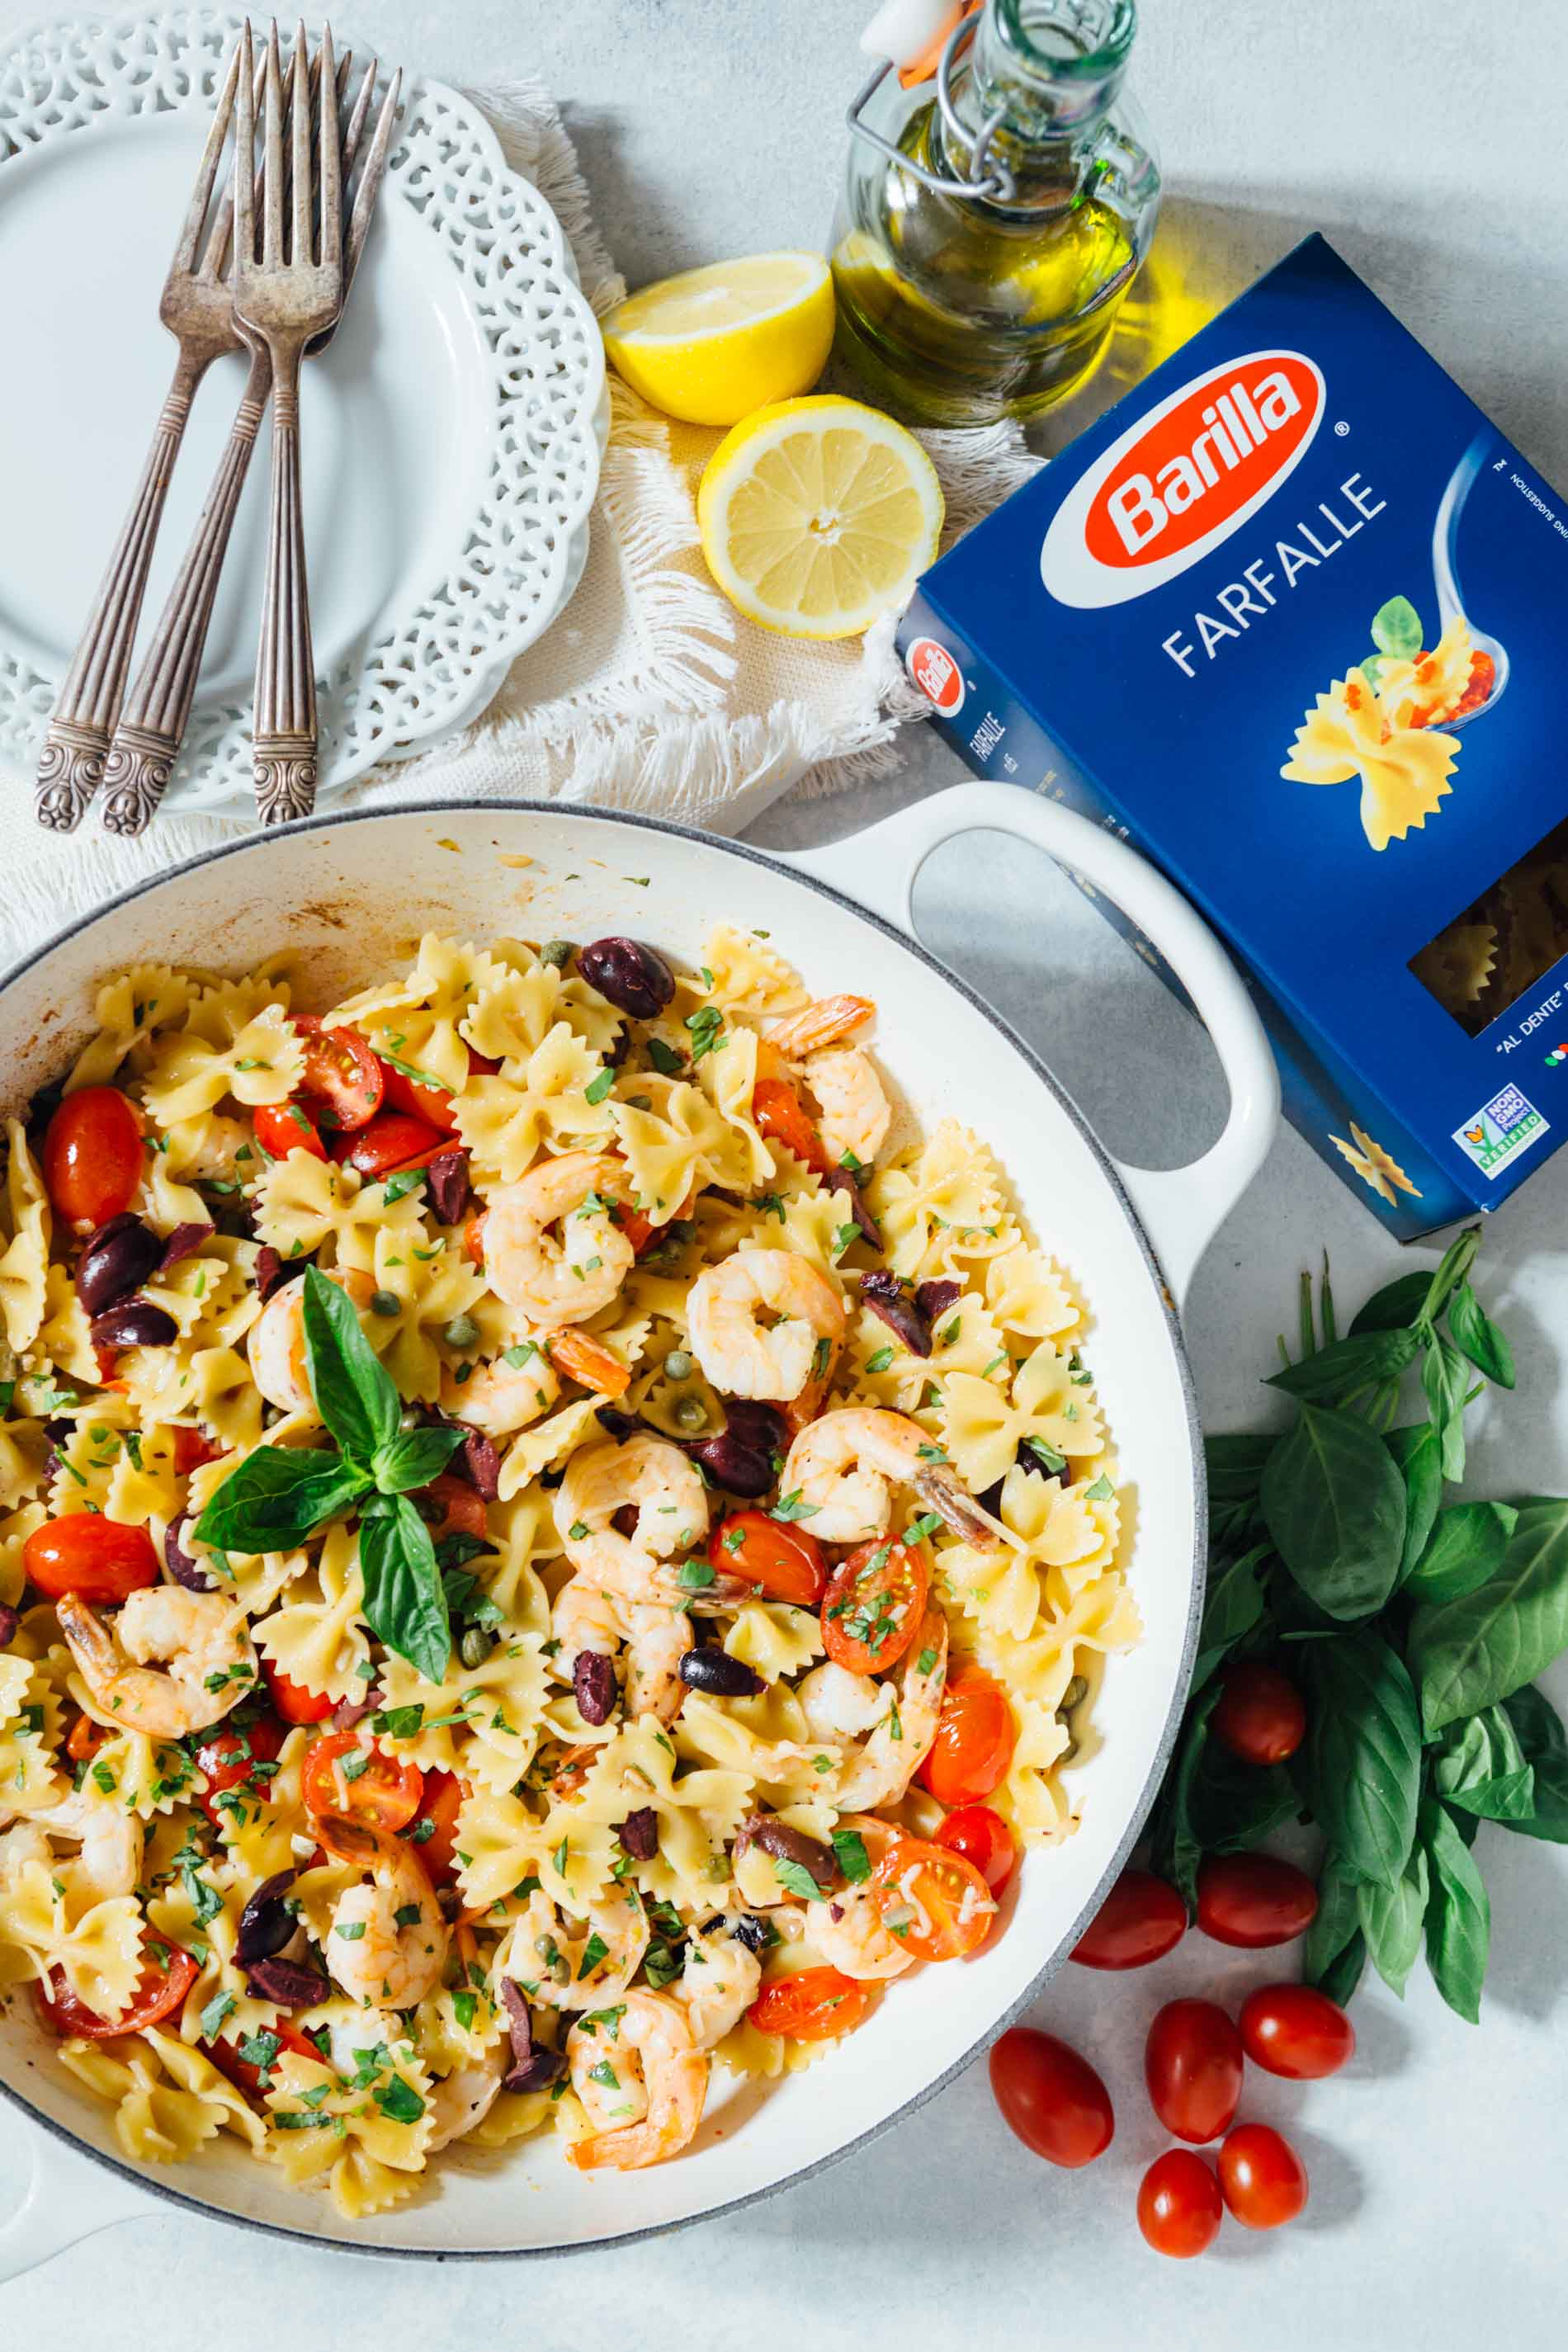 #AD Using @BarillaUS farfalle pasta to make this light and refreshing pasta dish! It is tossed with olive oil, lemon juice, and shrimp for a fresh and clean tasting Mediterranean dish packed with loads of flavor! #PastaWorldChampionship #PassionforPasta #?